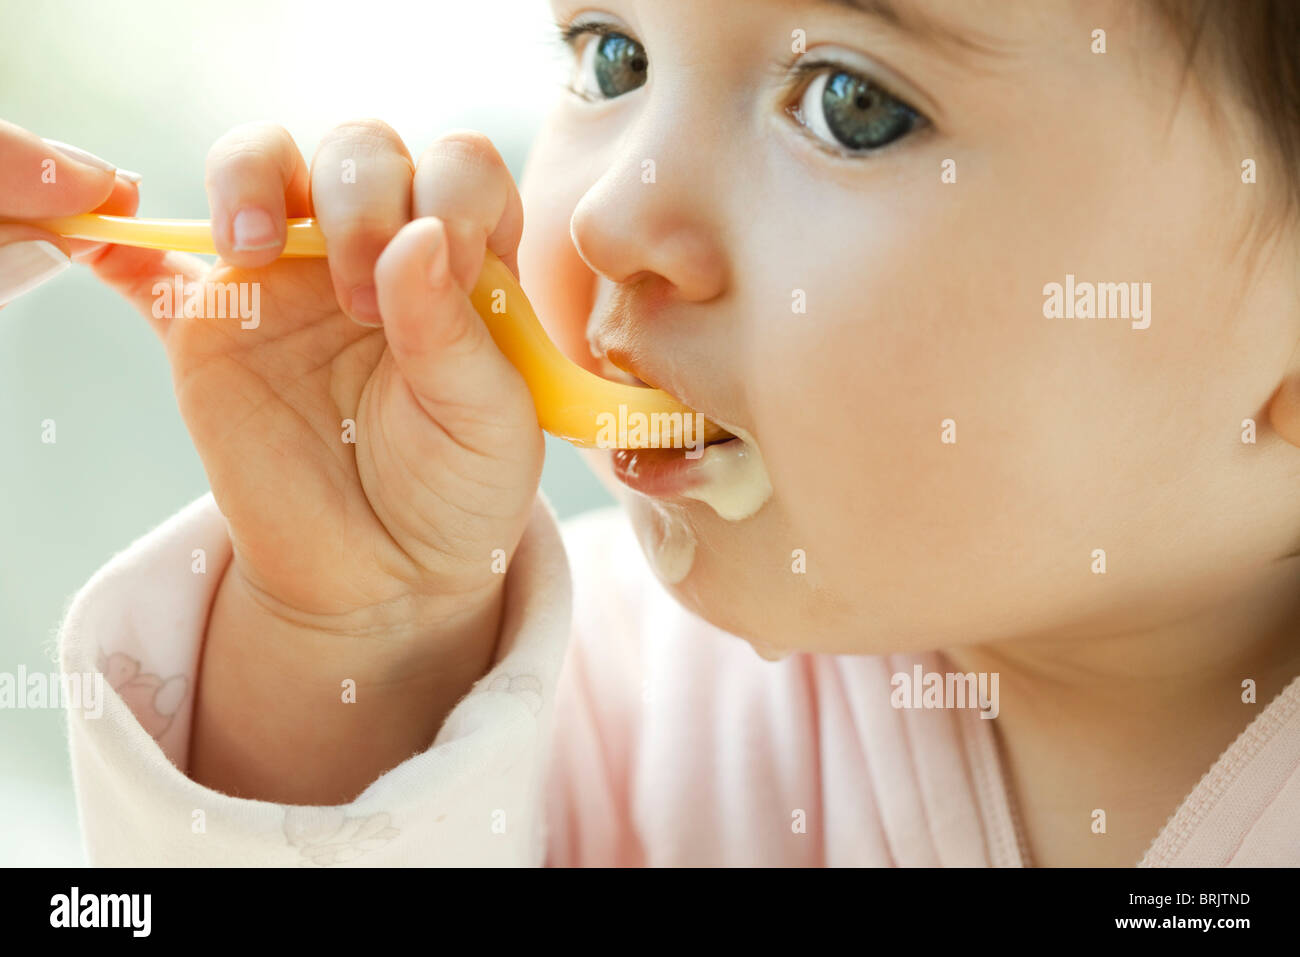 Infant learning to eat with a spoon - Stock Image